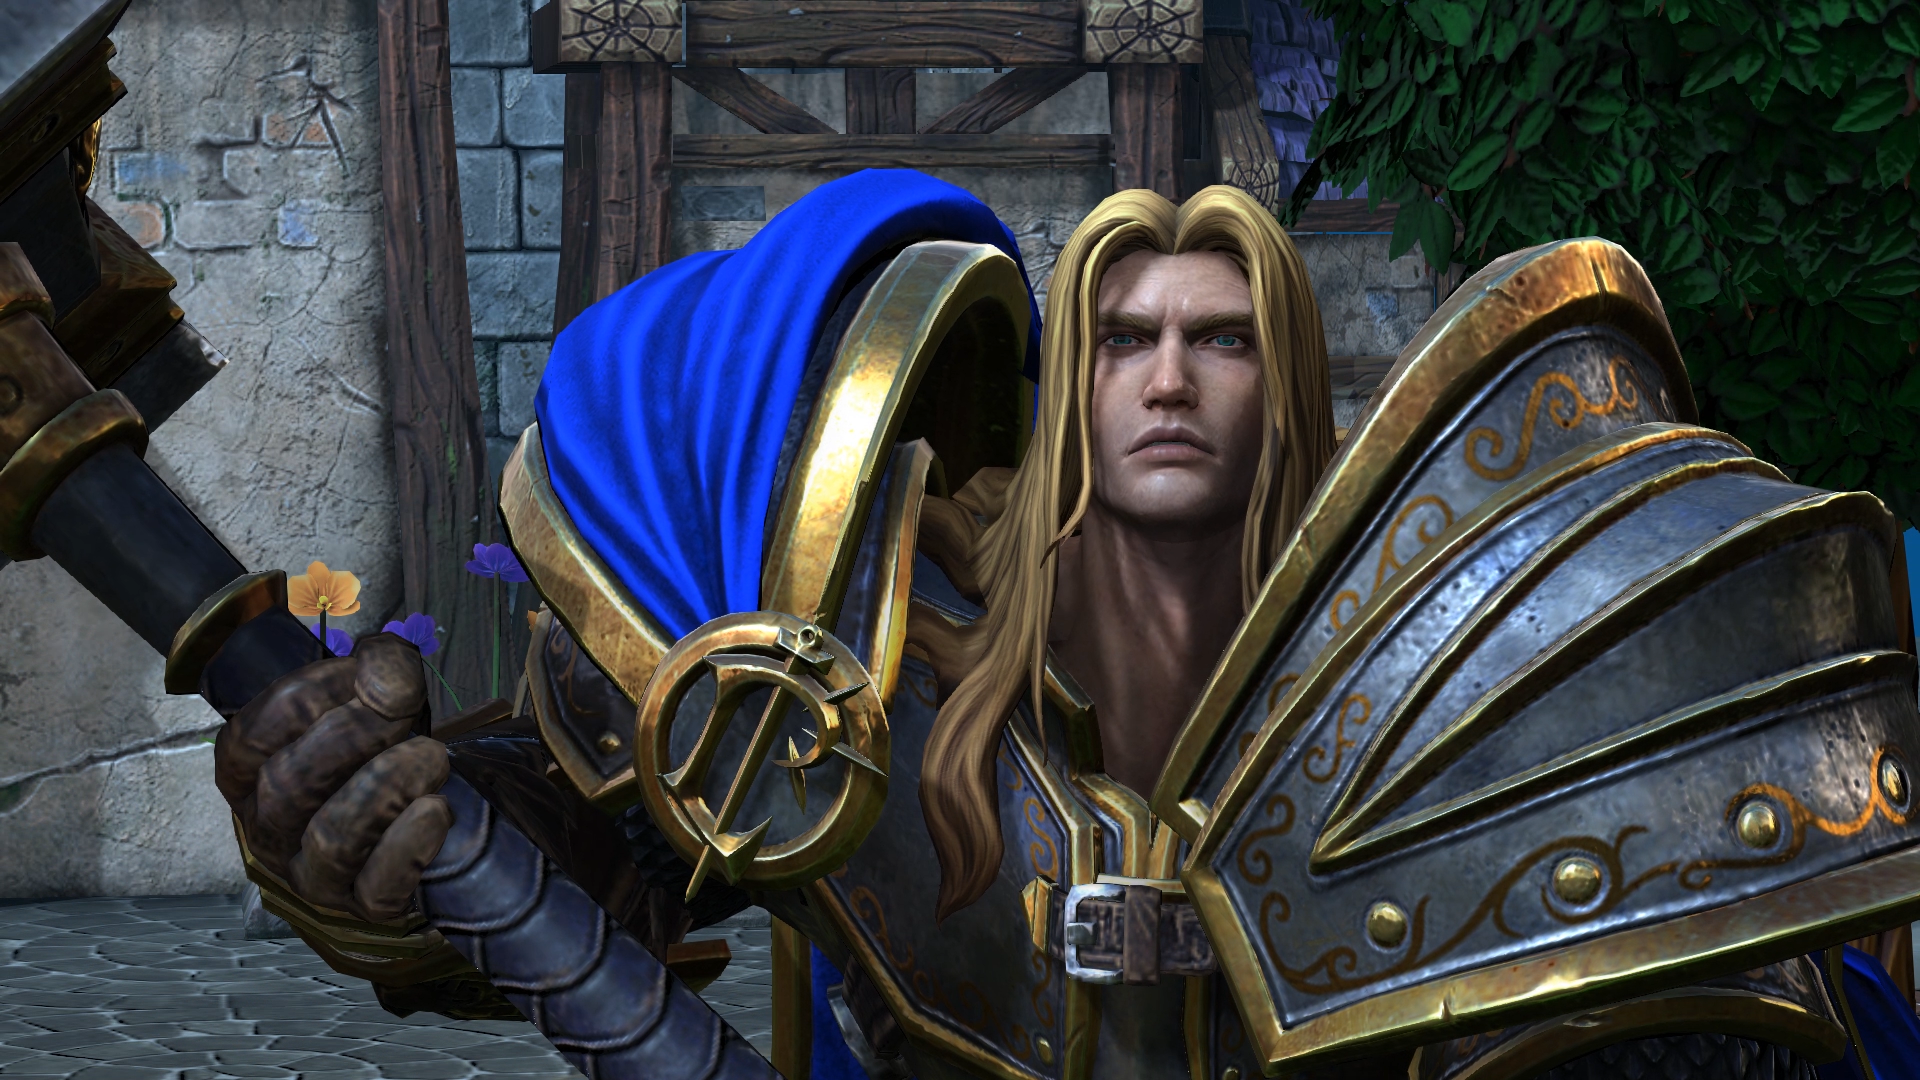 Warcraft 3: Reforged - Prince Arthas, the main character of the game.